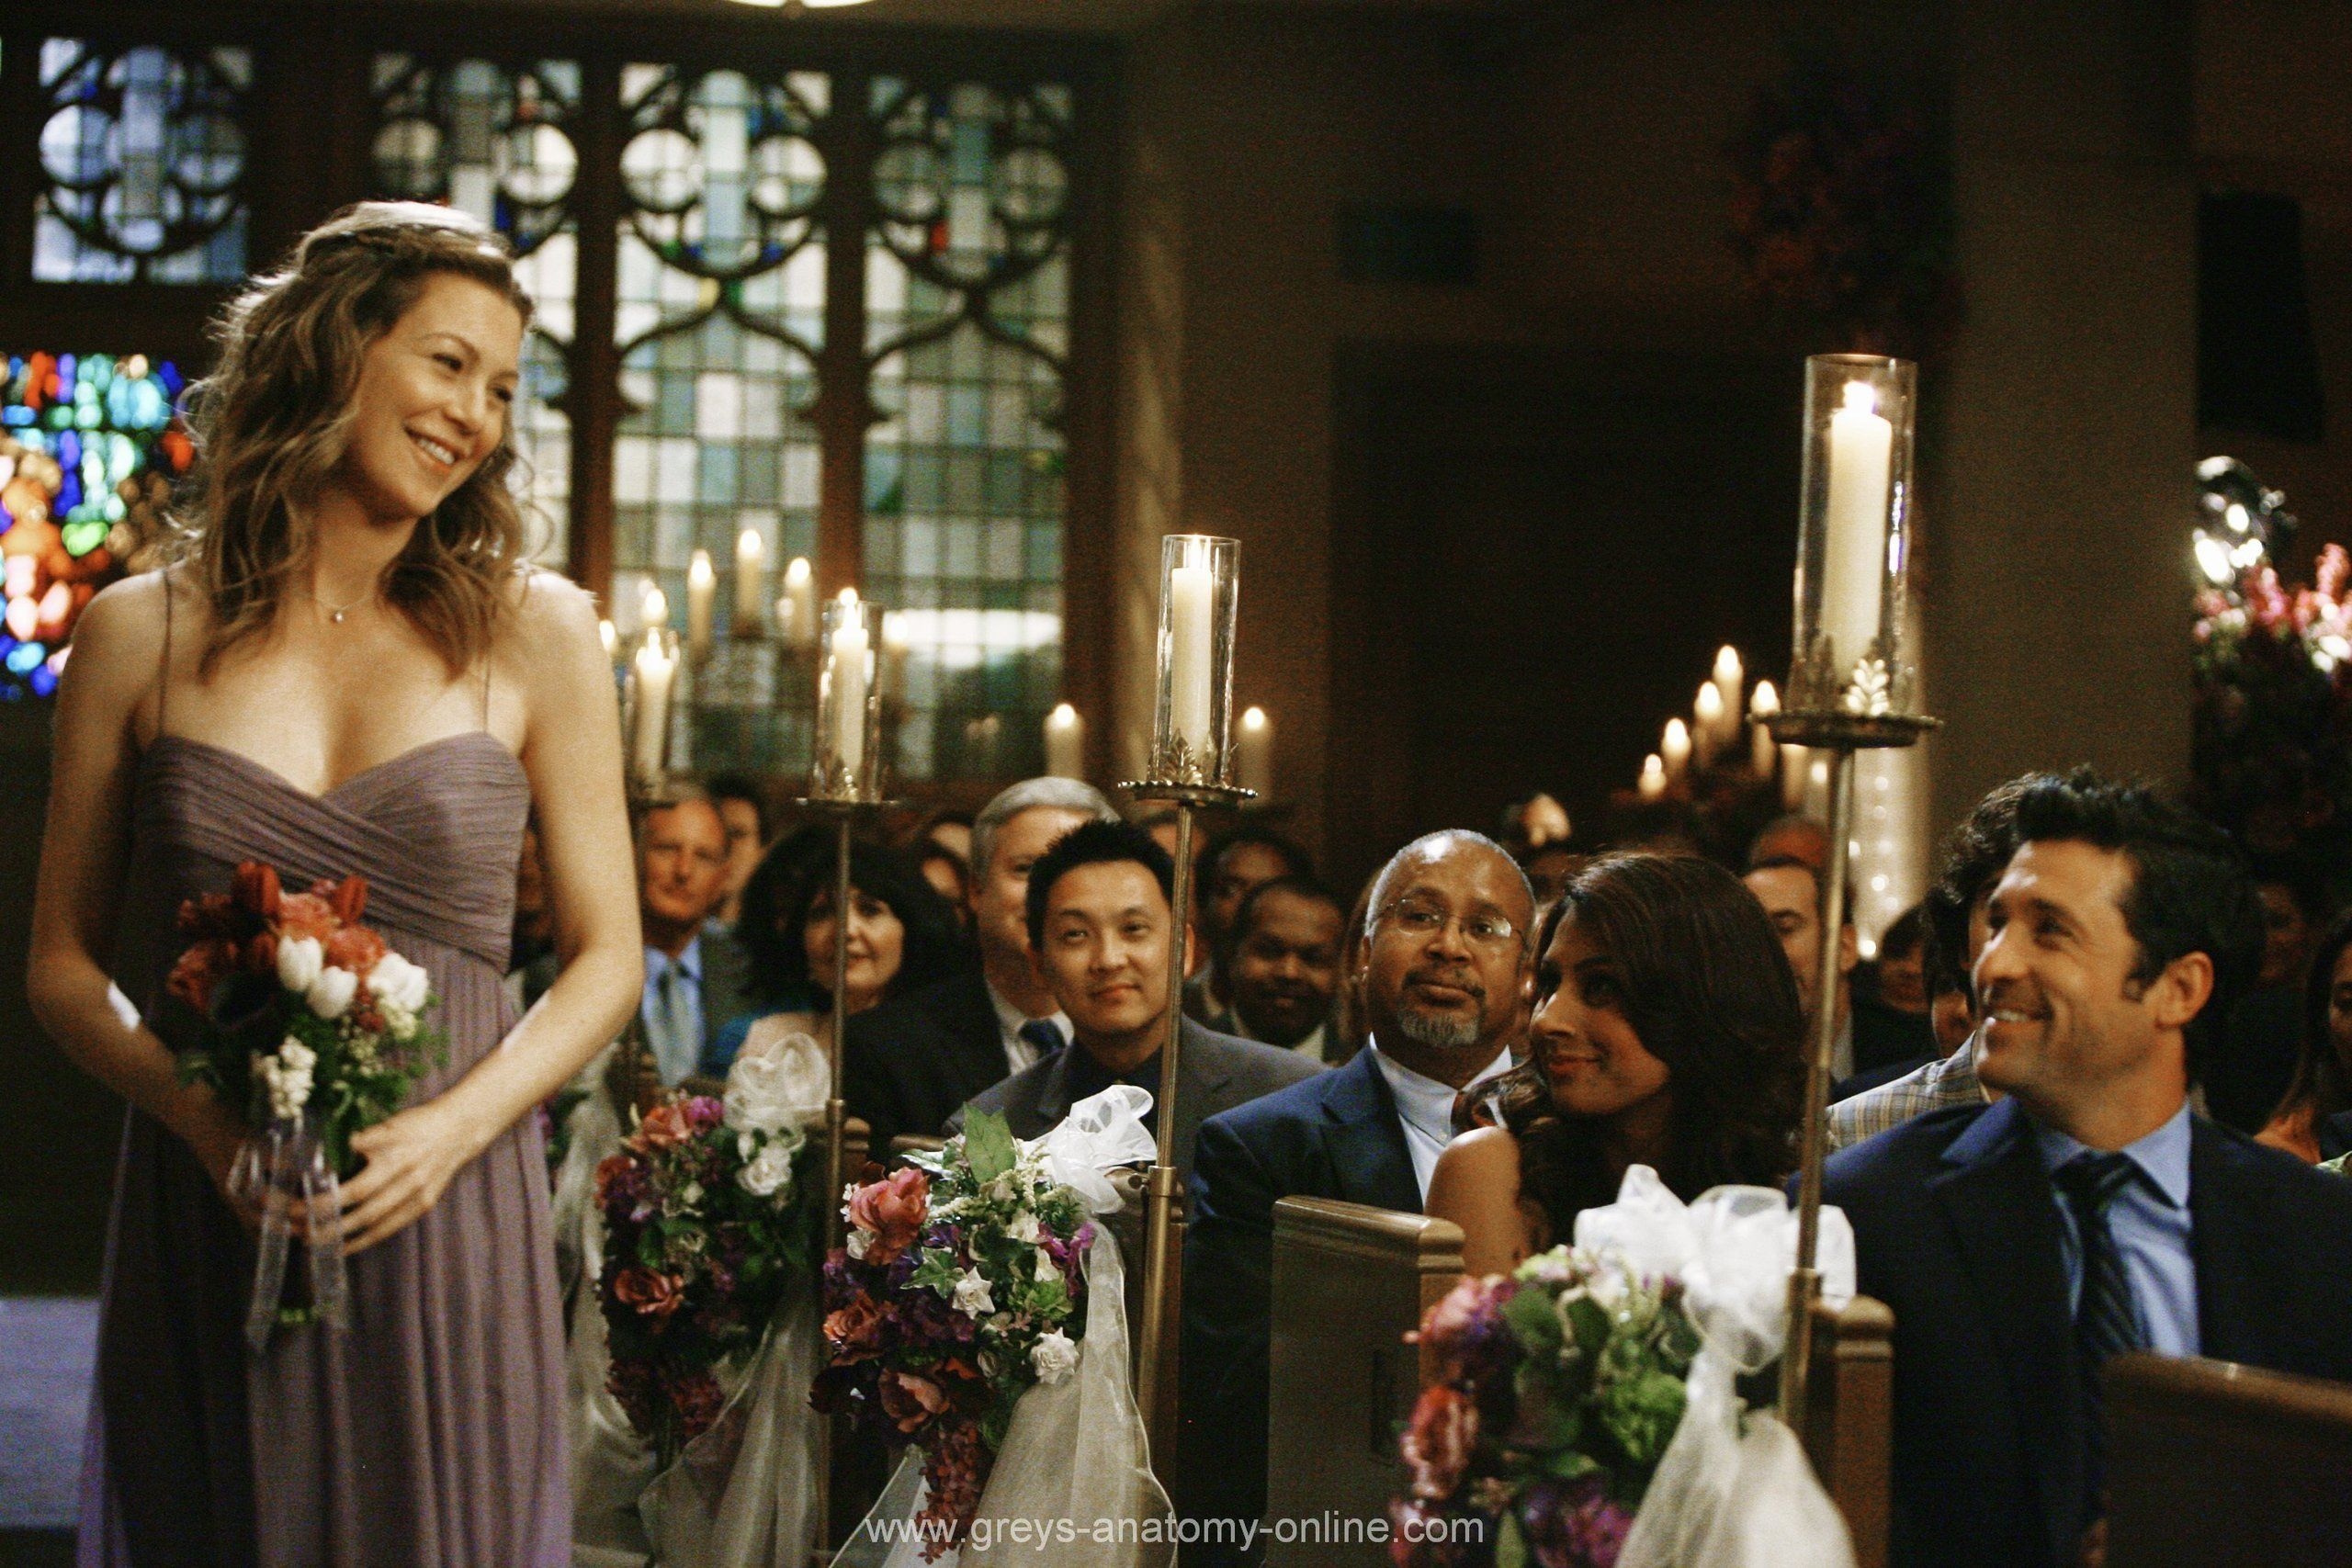 meredith and derek at izzie and alexs wedding love this